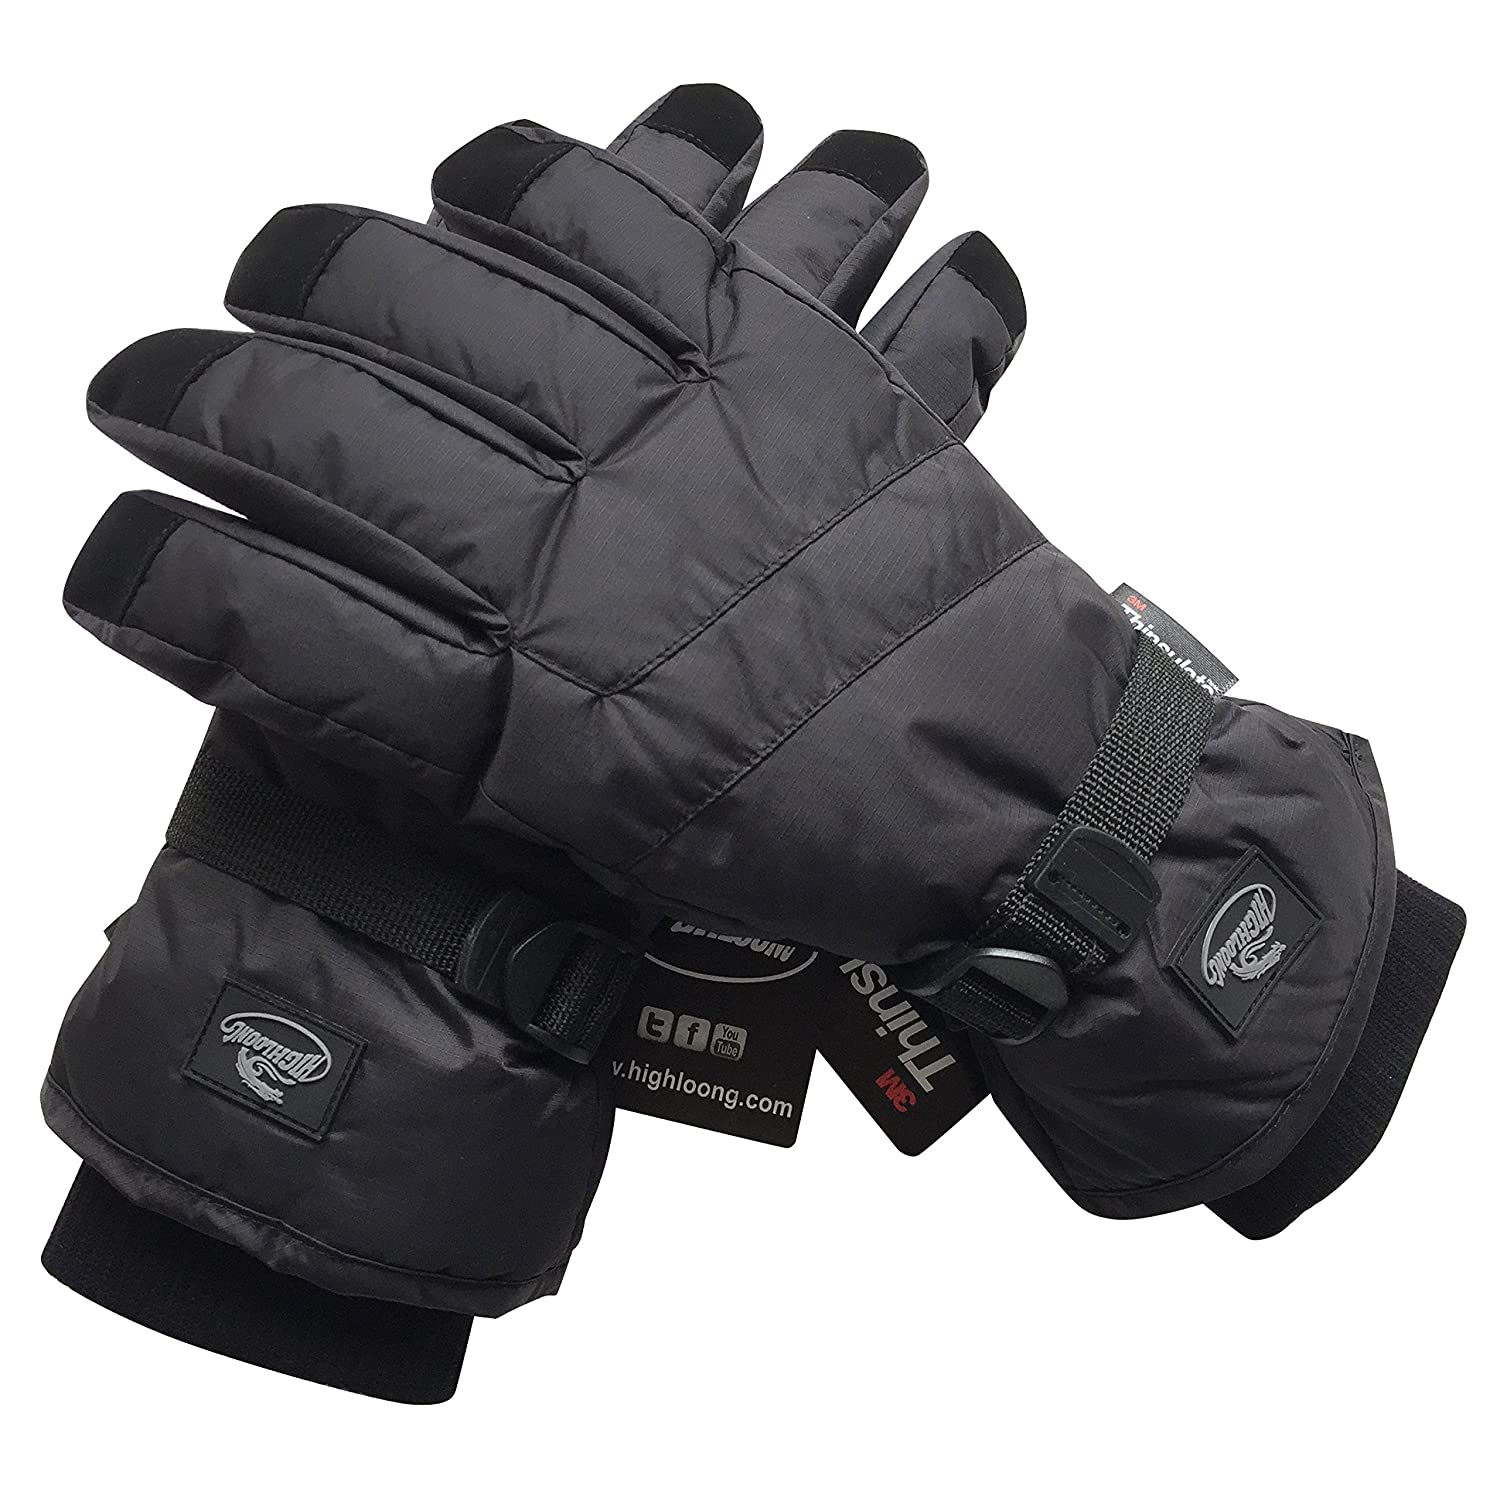 HighLoong Black Men Waterproof Thinsulate Winter Cold Weather Ski Snowboard Gloves (L, Basic)